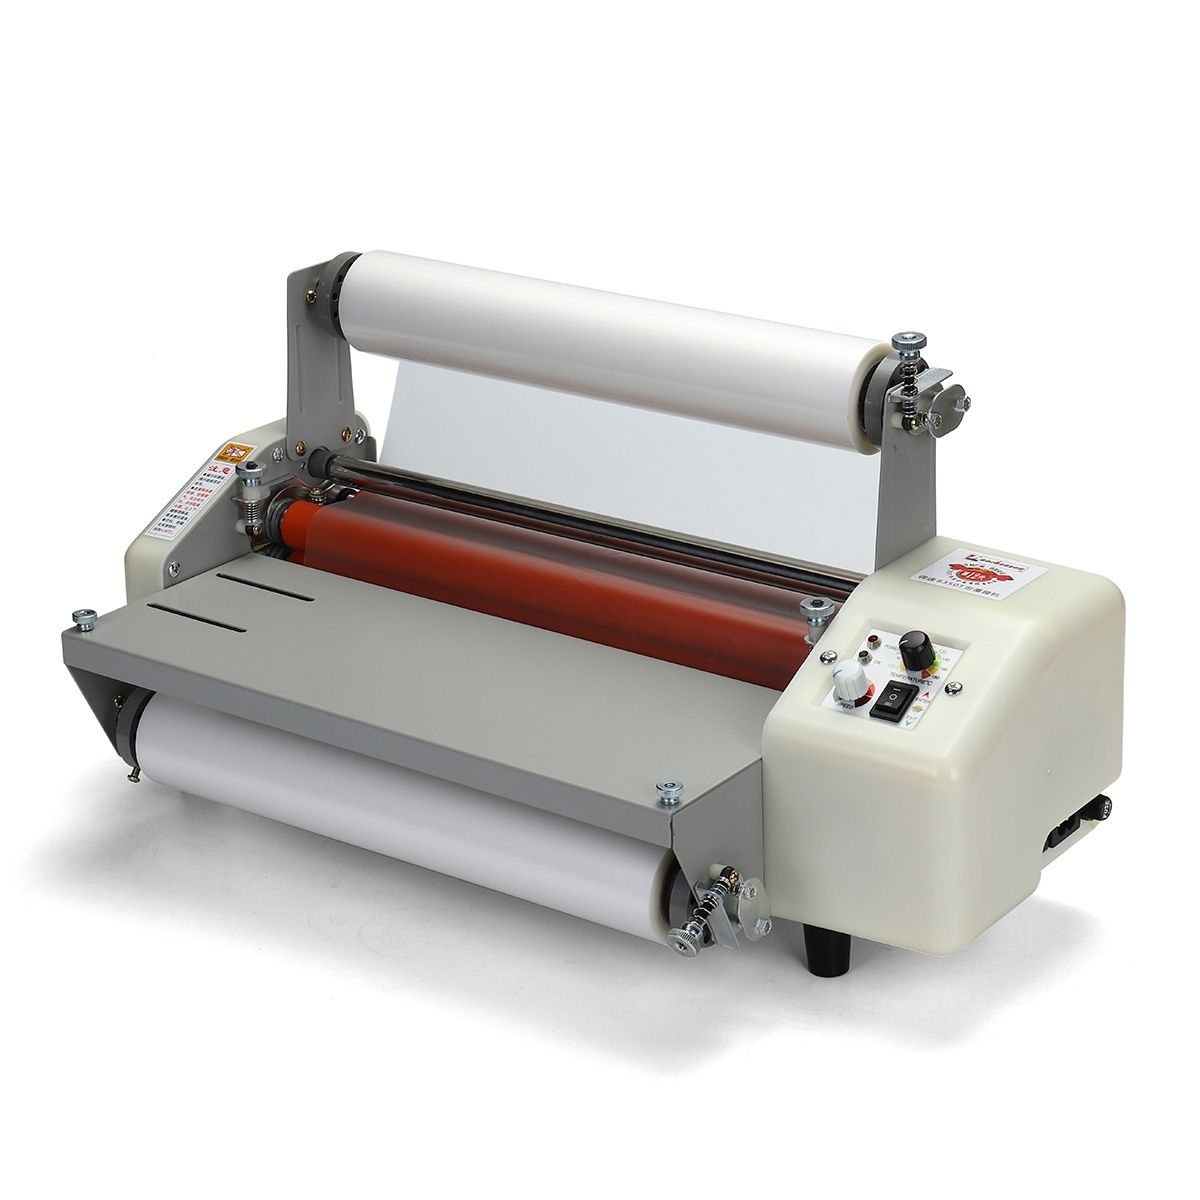 220v 12 Generation 8350t Laminator Four Rollers Hot Roll Laminating Machine A3 Laminators Roller Malaysia